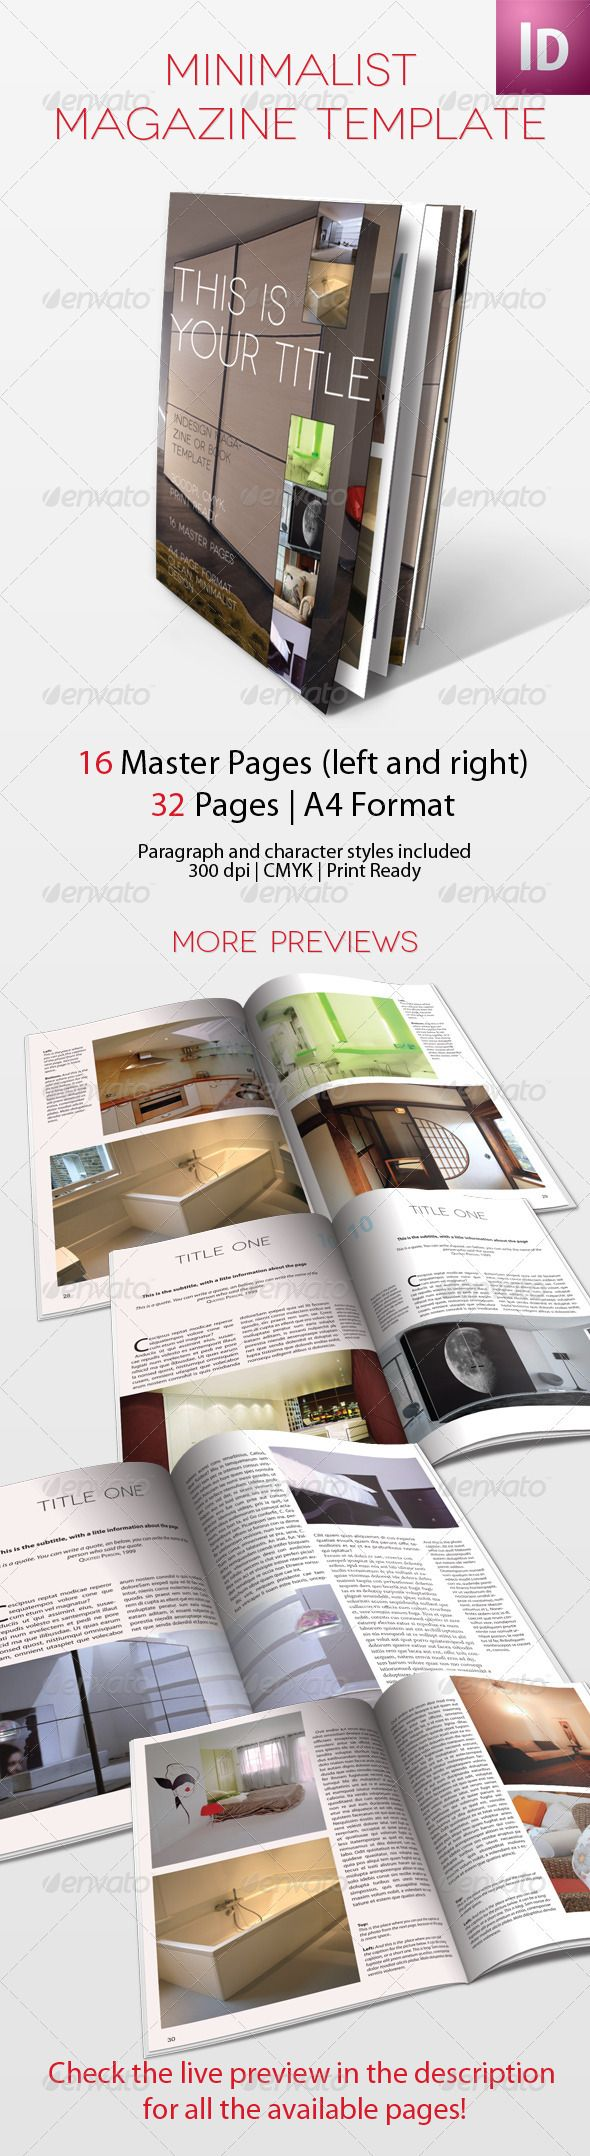 89 best design magazine layouts images on pinterest editorial